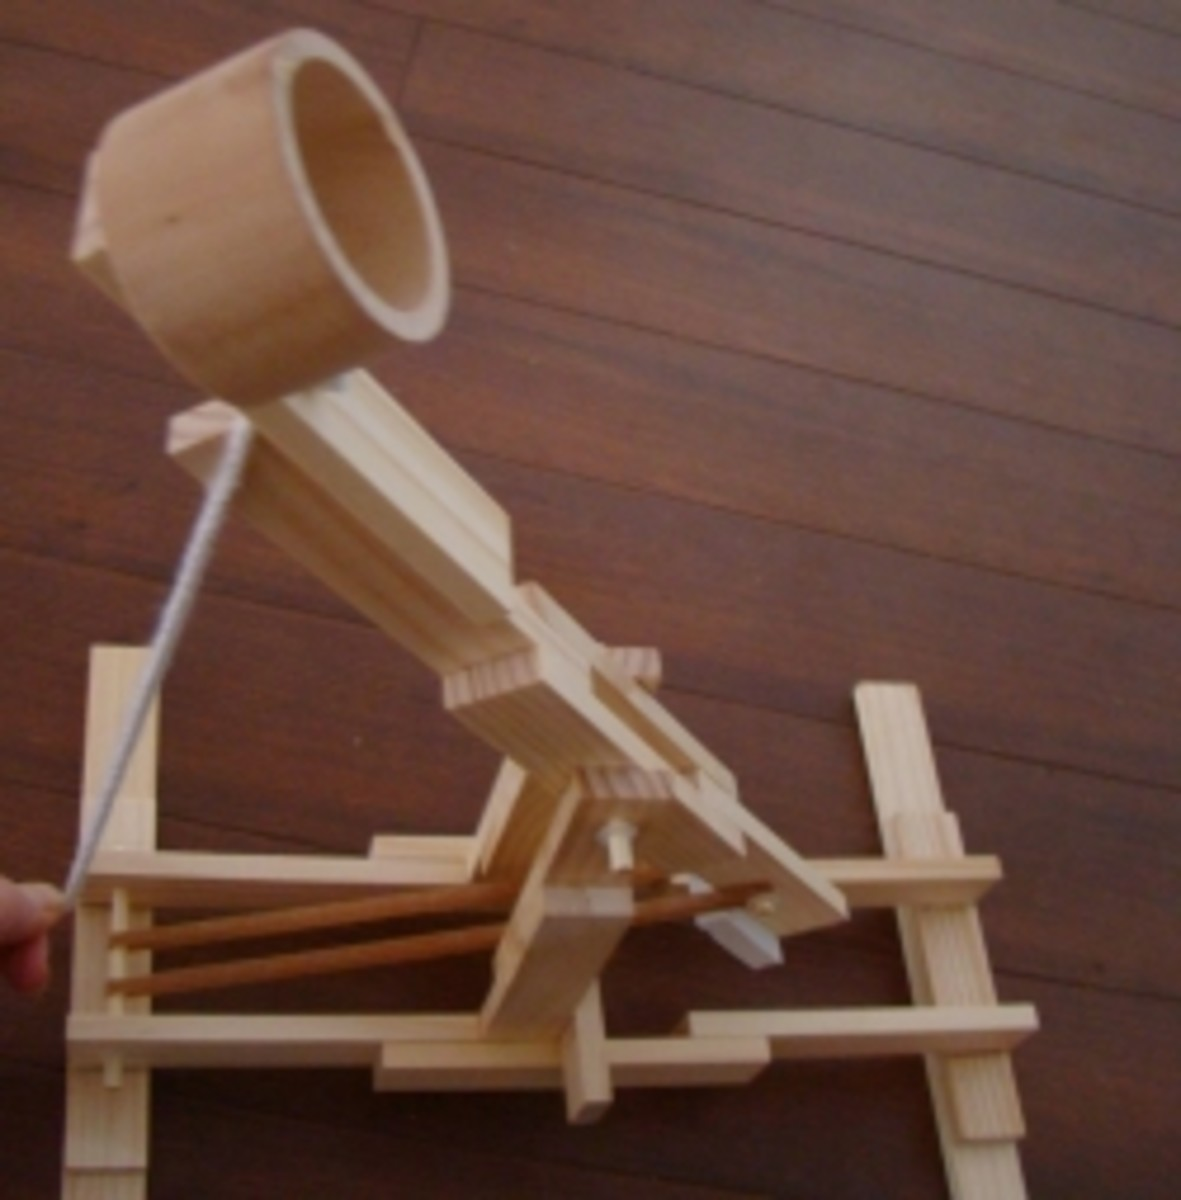 Homemade catapult from kit